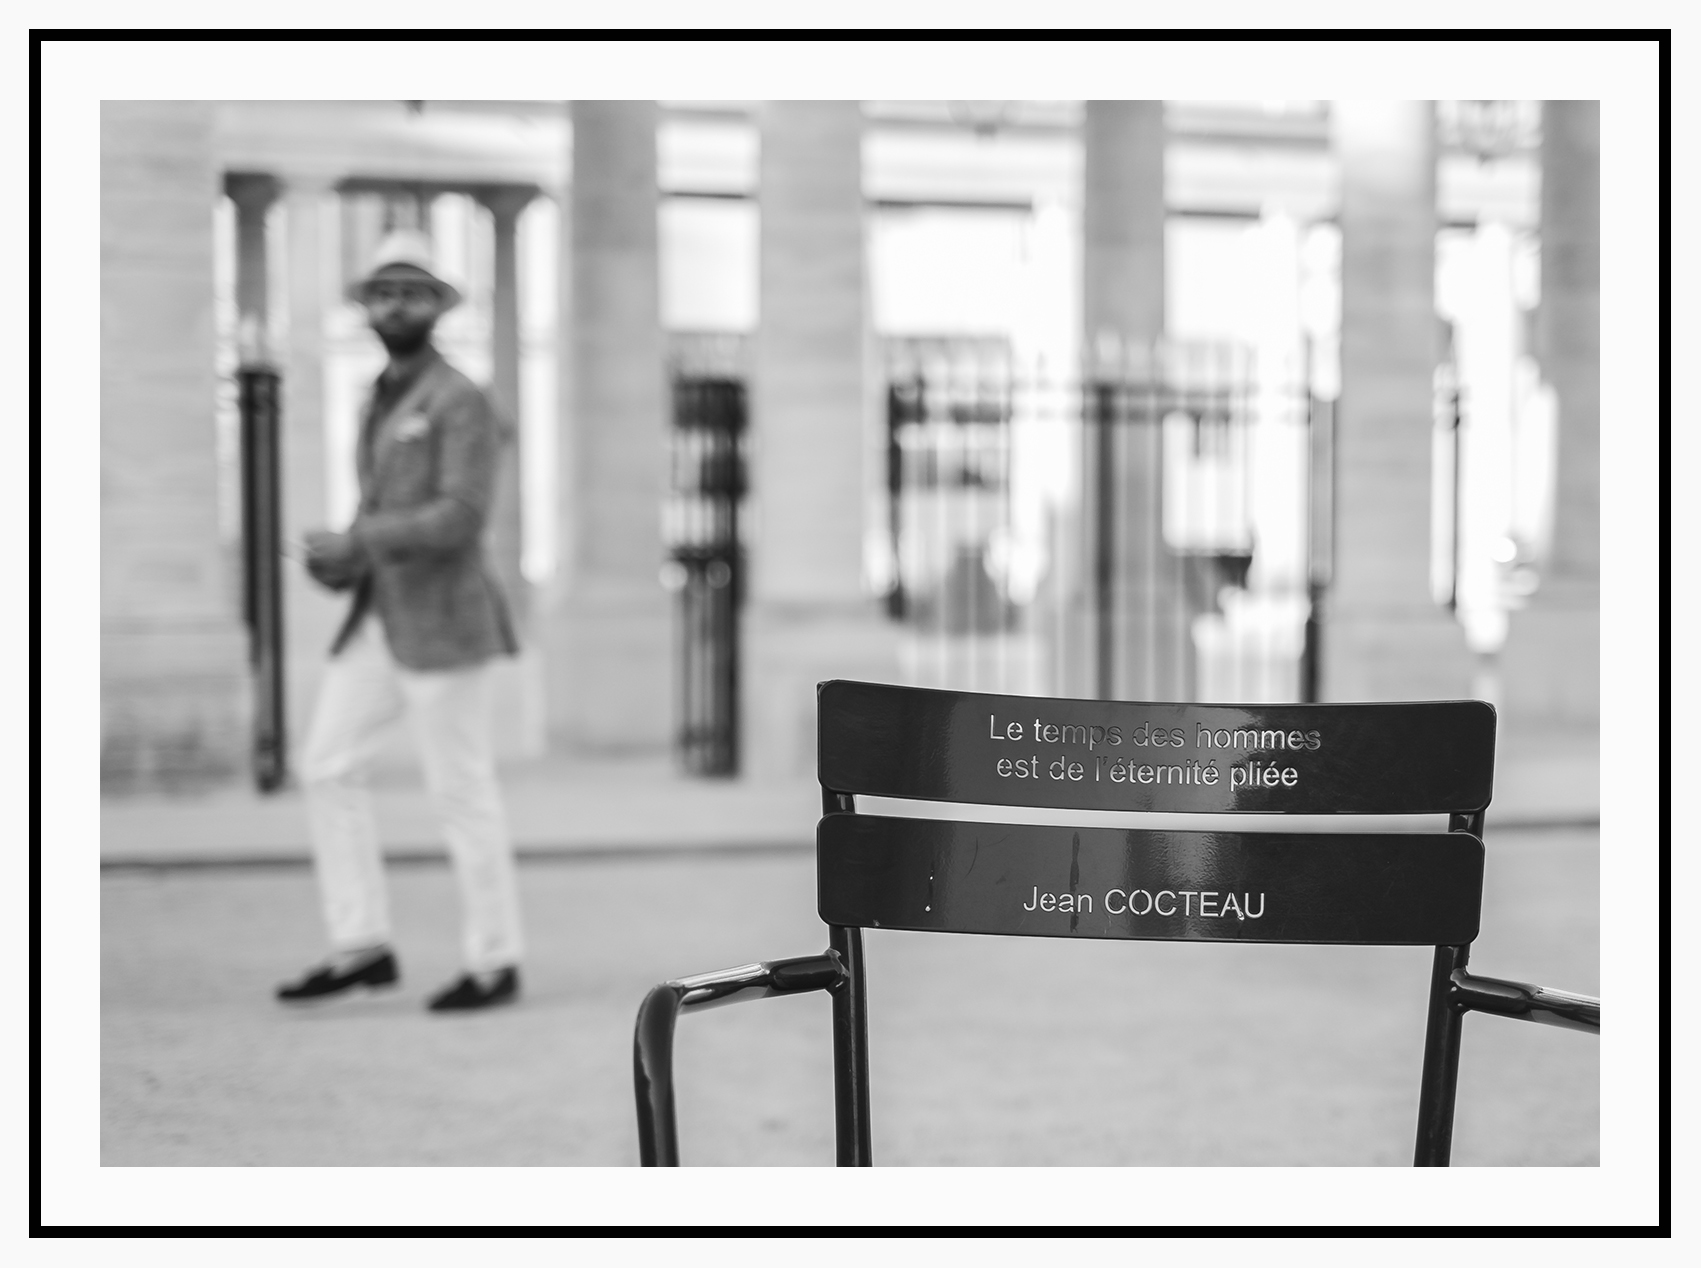 Paris - Palais Royal   Fuji XT1 with Fujinon XF 35mm f/1.4 R © 2019 Miguel Witte